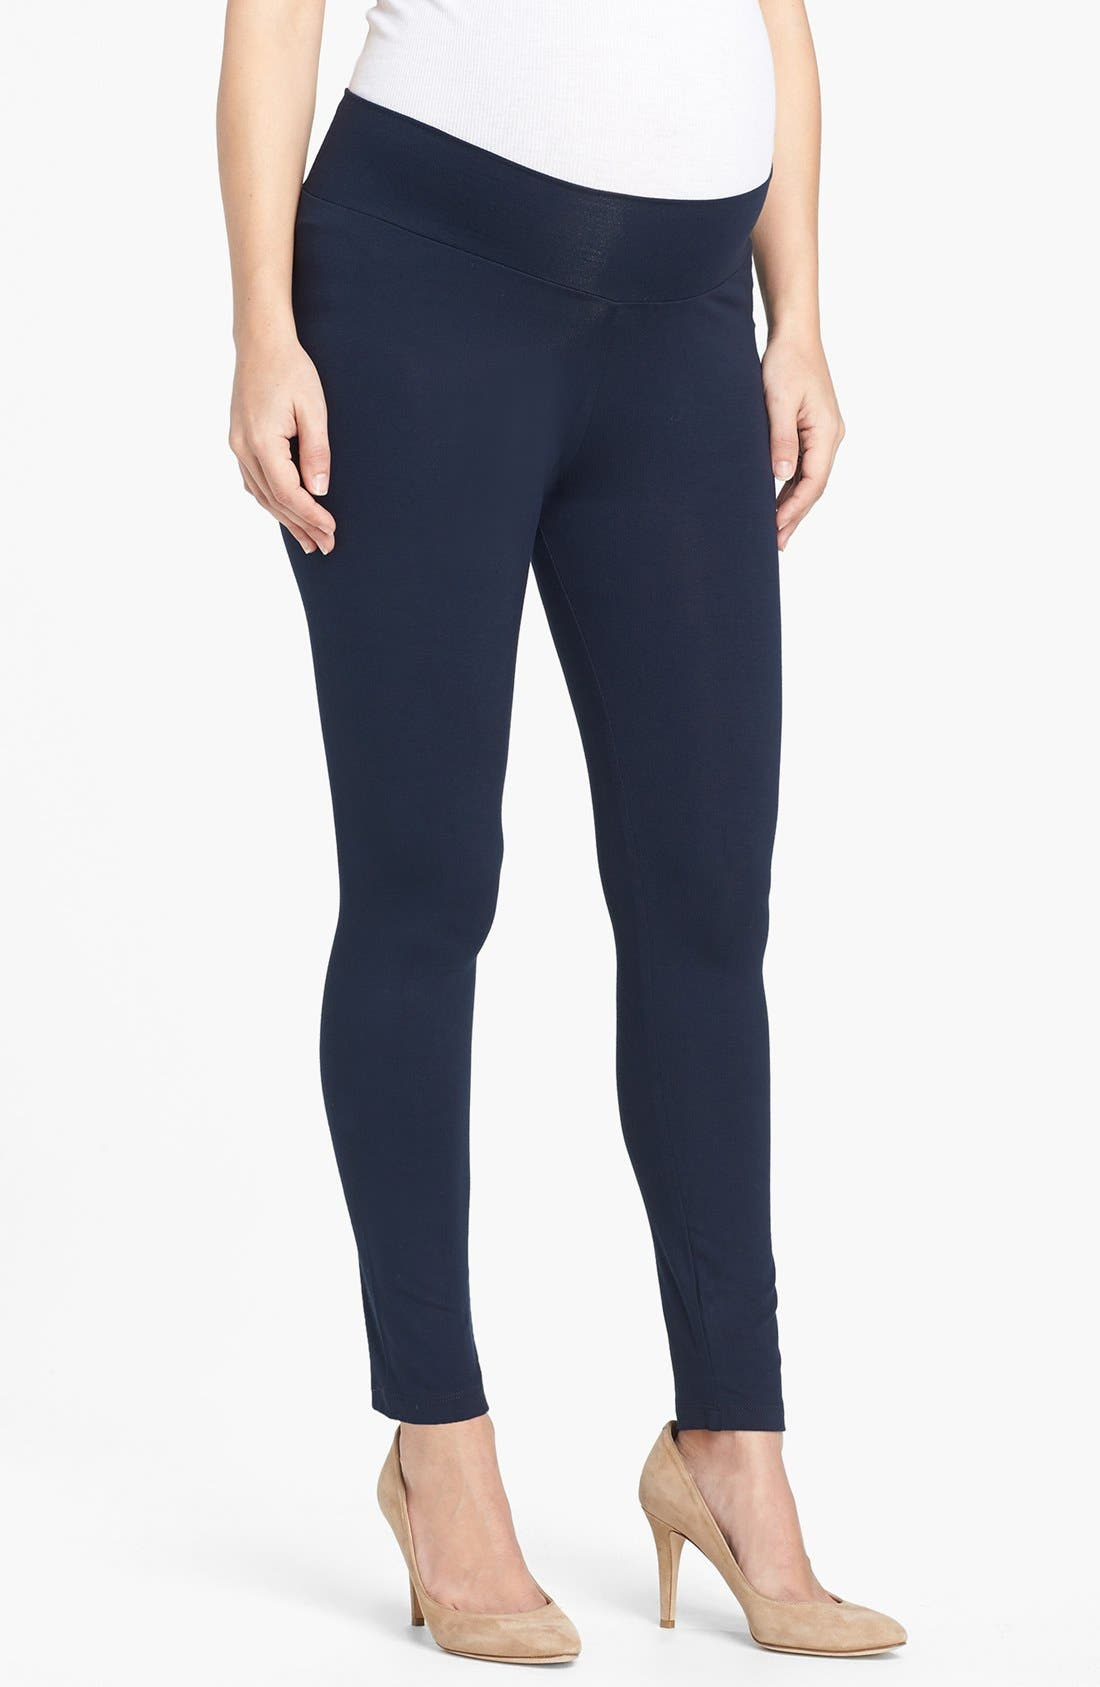 Maternity Leggings,                         Main,                         color, Navy